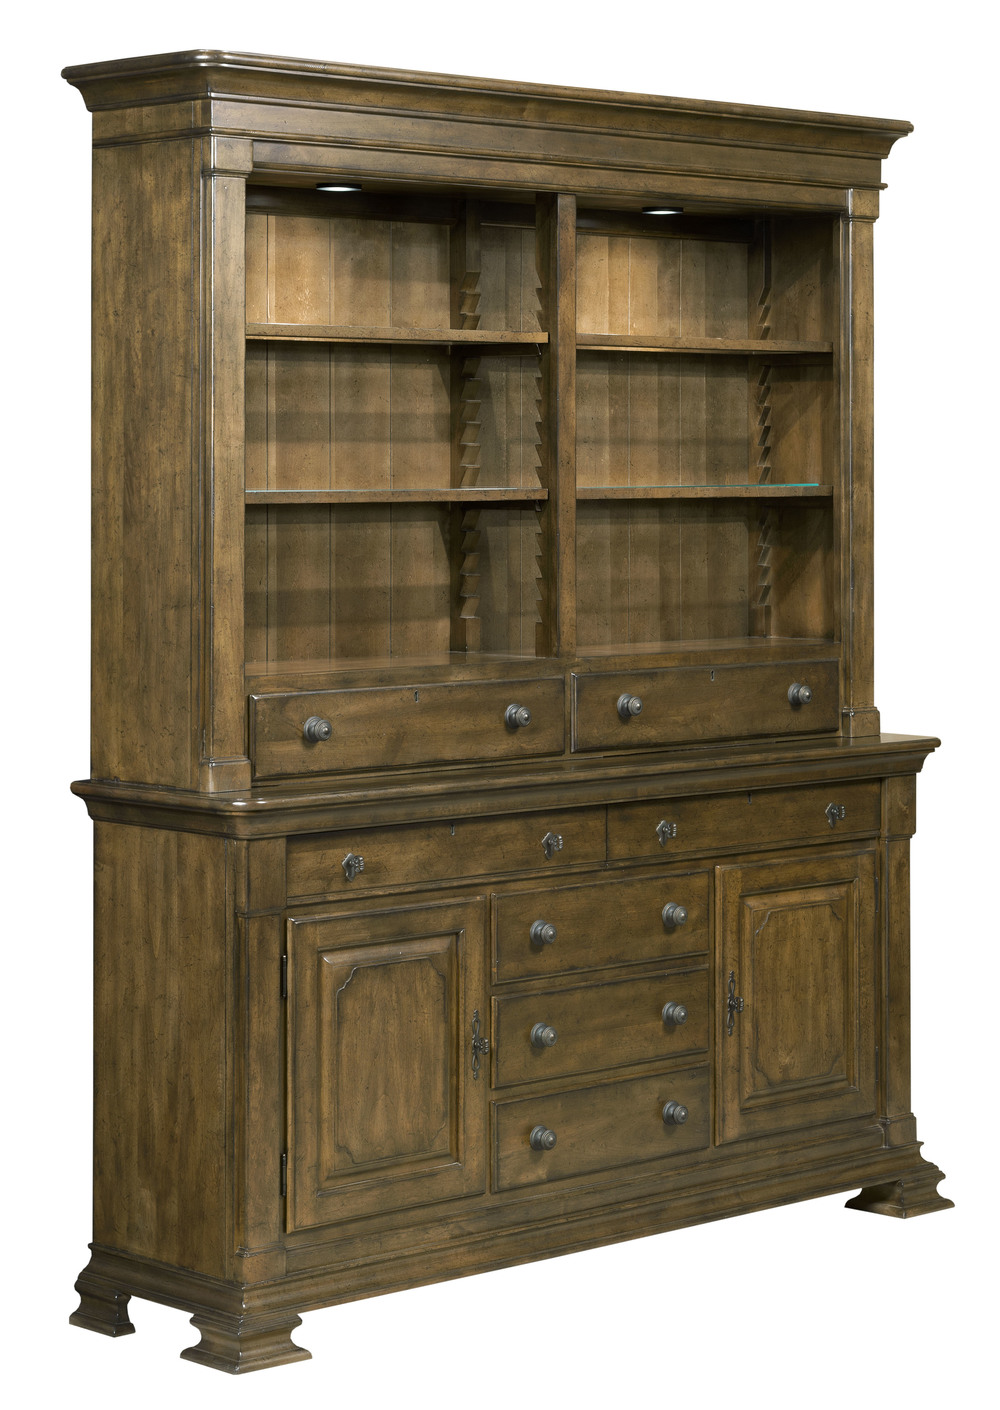 Kincaid Furniture - China Hutch with Base